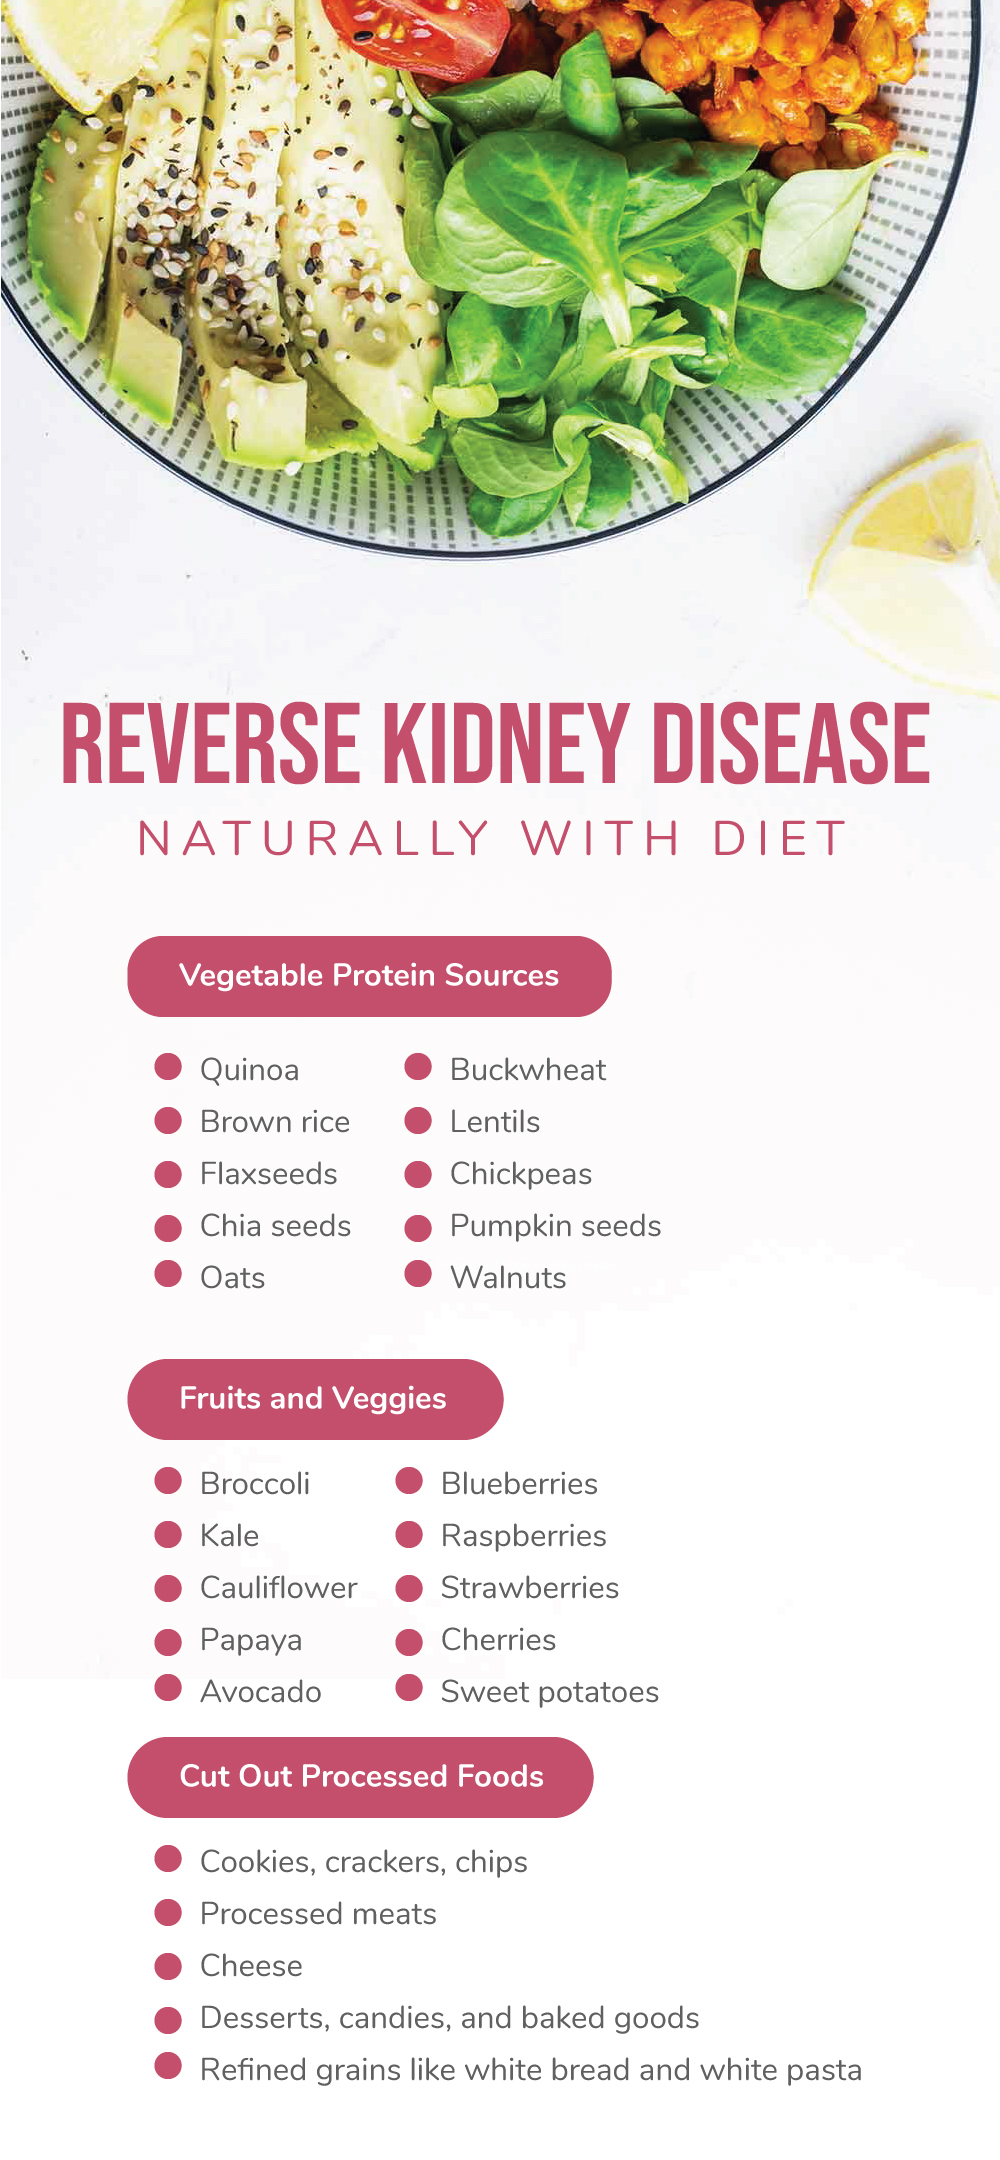 Reverse Kidney Disease Naturally with Diet